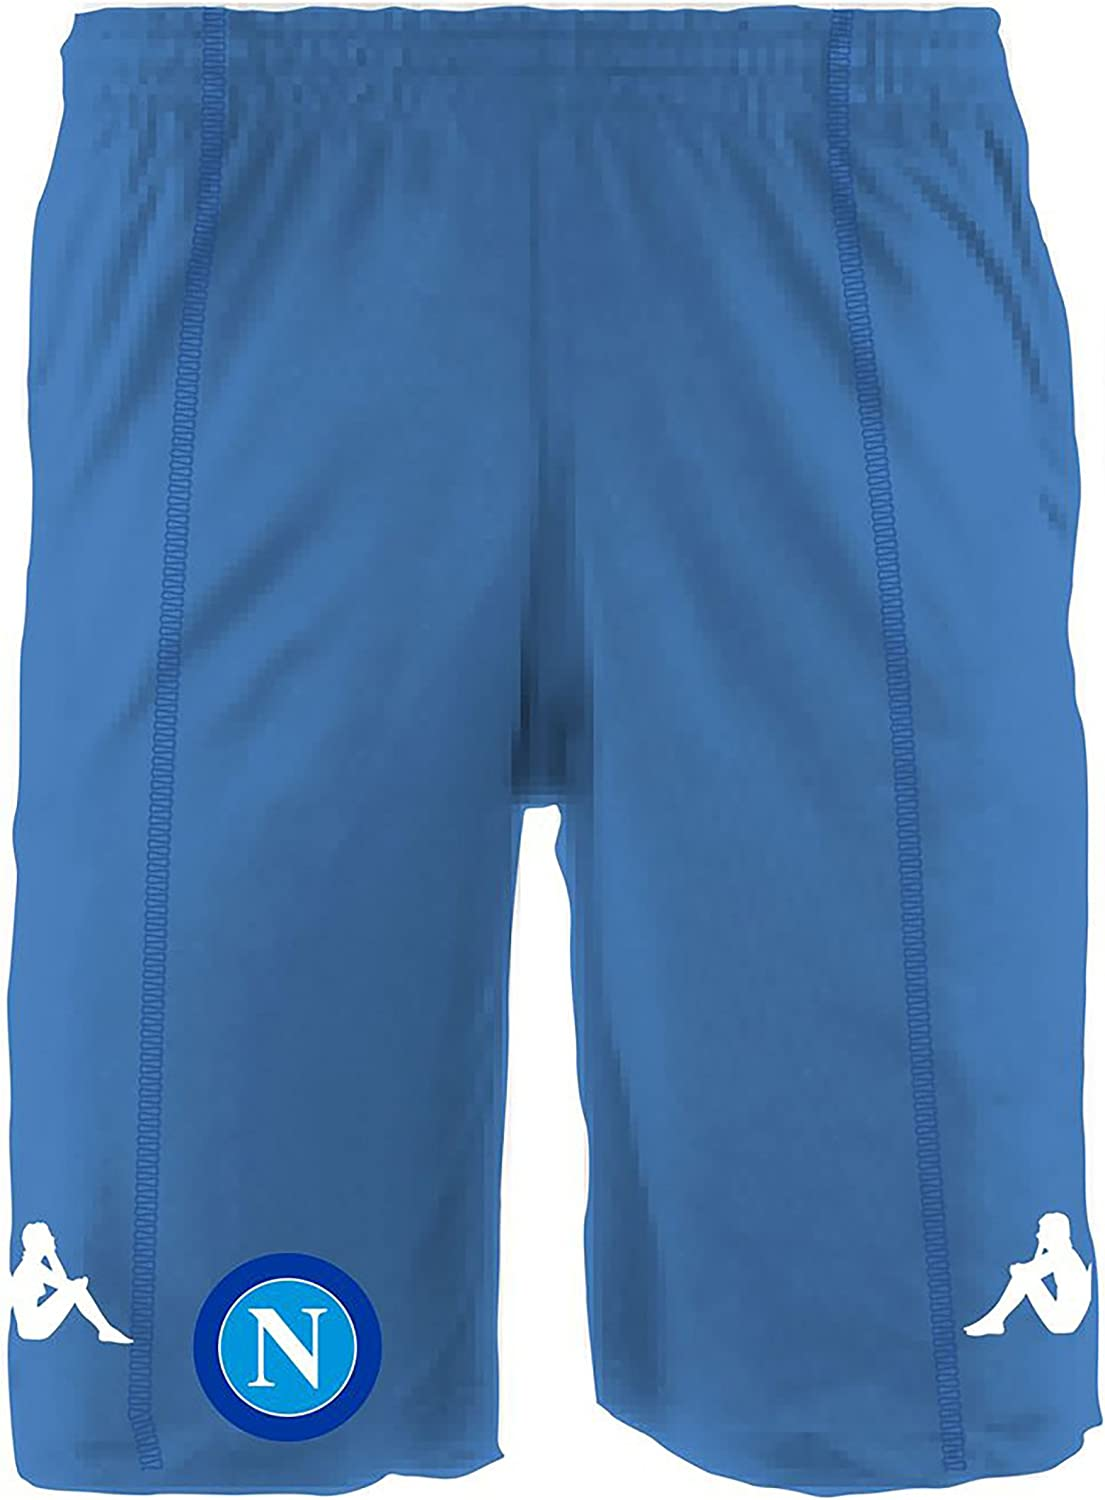 Kappa Collection officielle 2016//17 Short training NAPLES Taille adulte homme